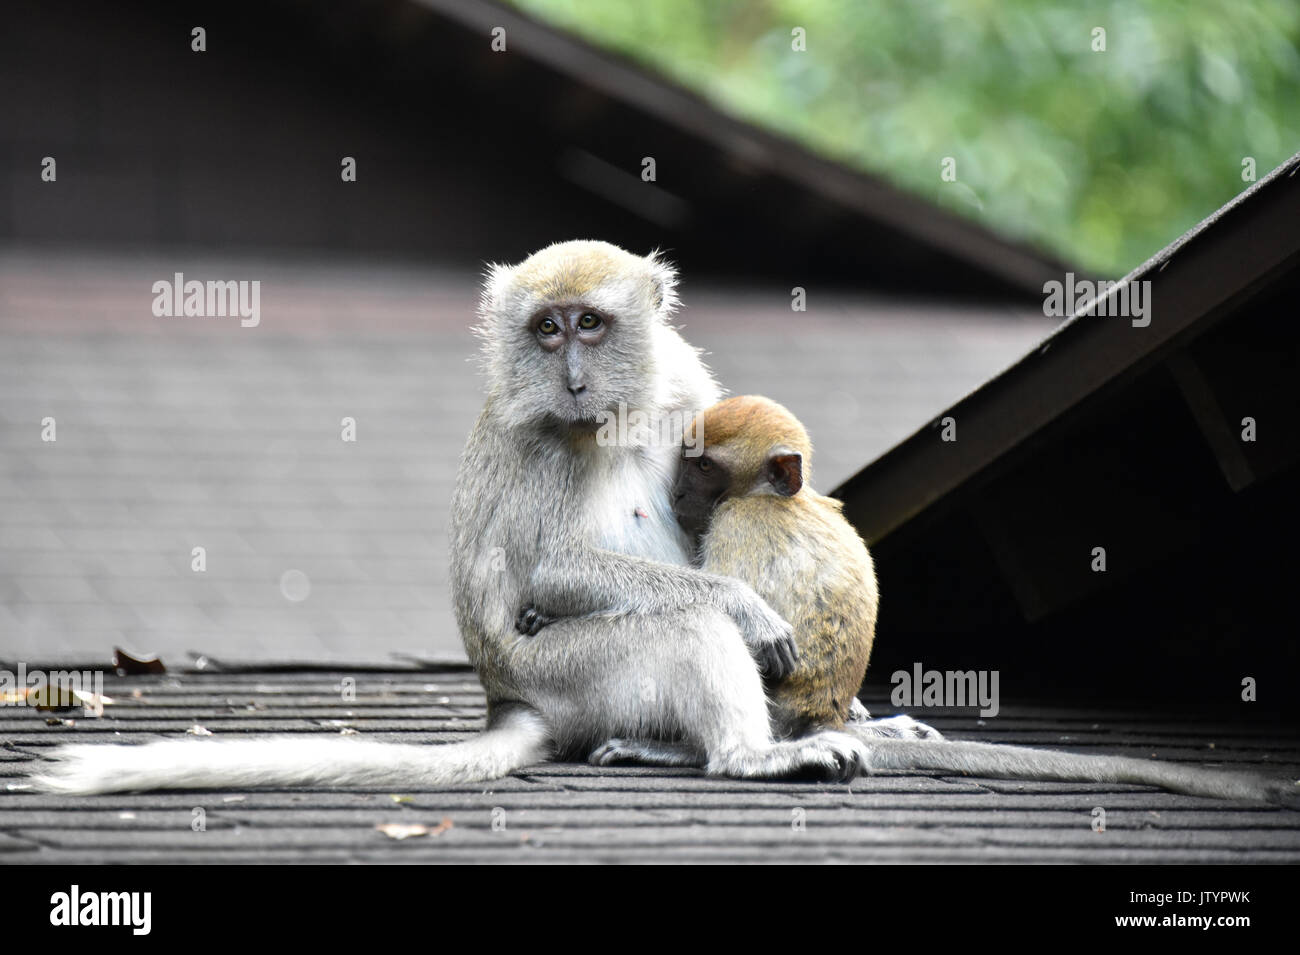 Macaque - Monkey Business - Stock Image